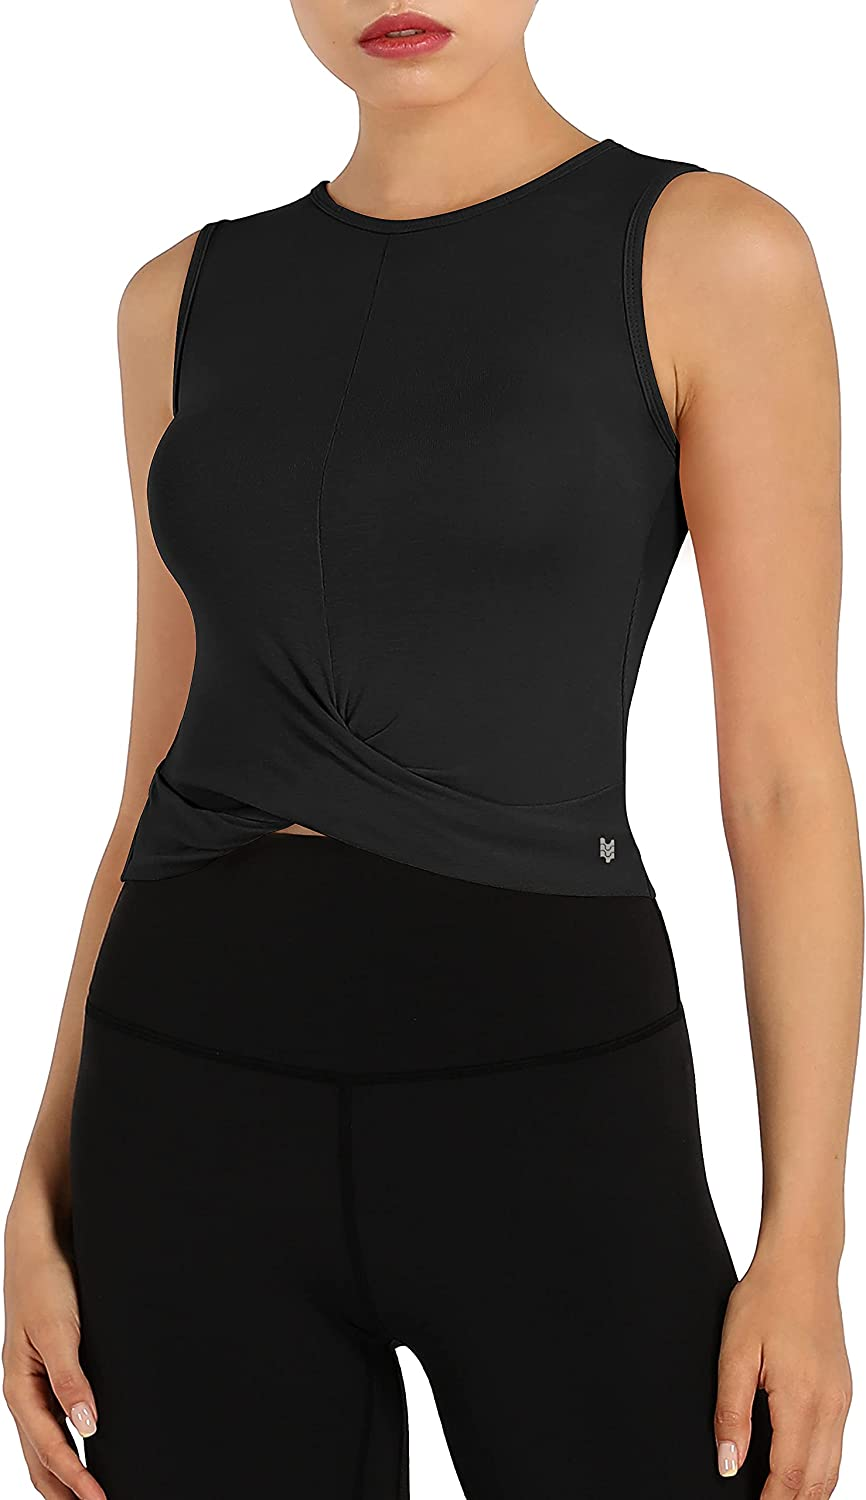 ODODOS Women's Long Sleeve Crop Tops Fitted Manufacturer regenerated product Max 79% OFF See Slim Through Cro